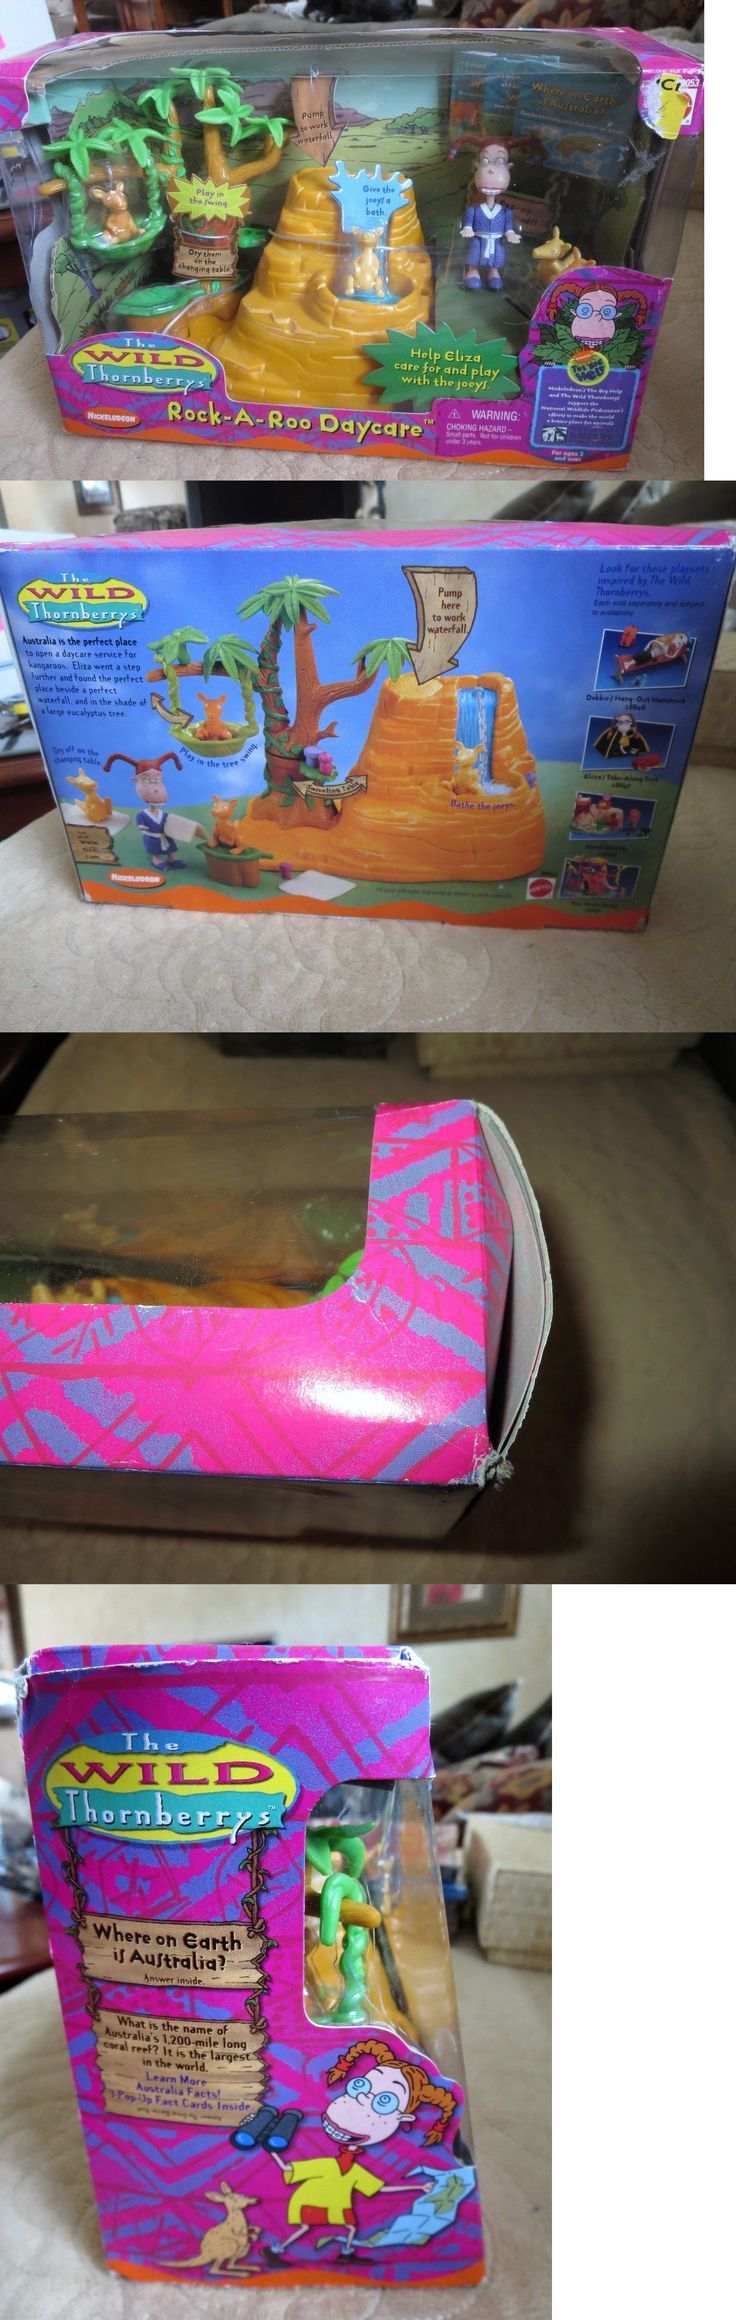 Fast Food 767: 2000 Wild Thornberrys Rock-A-Roo Daycare Playset Super Rare Toy Mattel New -> BUY IT NOW ONLY: $49.5 on eBay!